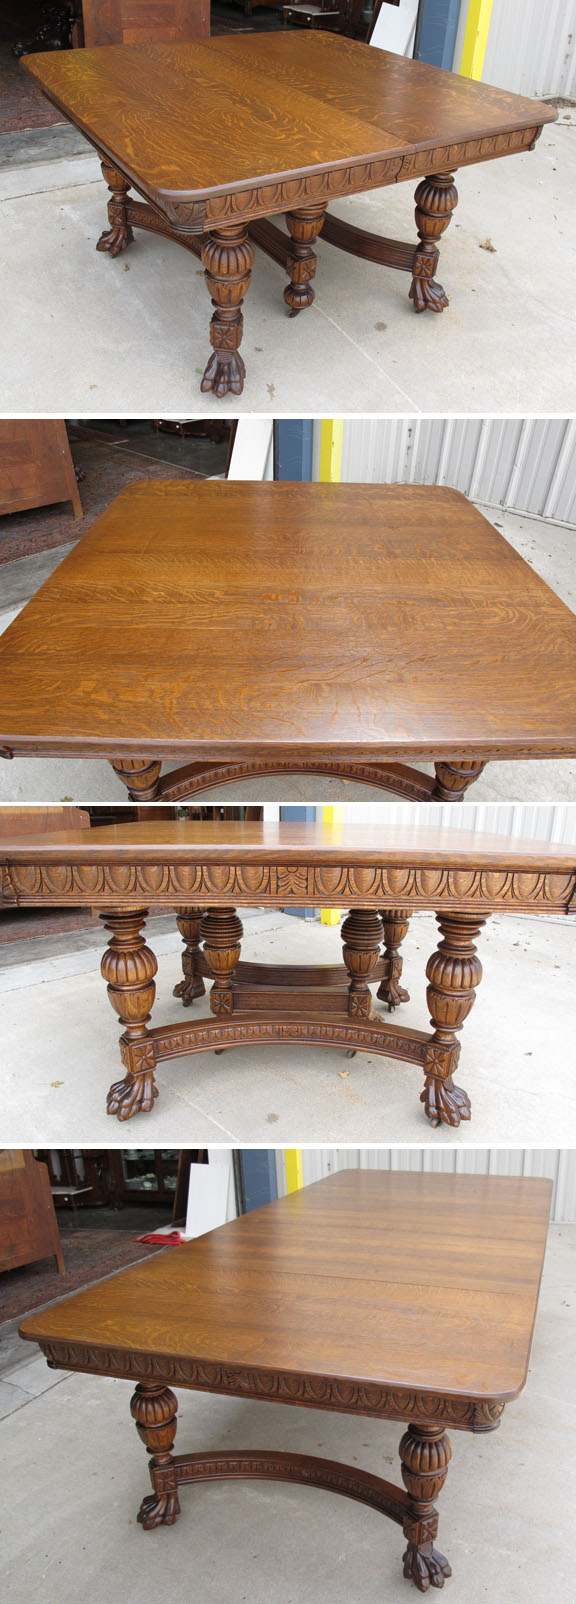 Quartersawn oak 50 inch square dining table for 1 oak las vegas table prices